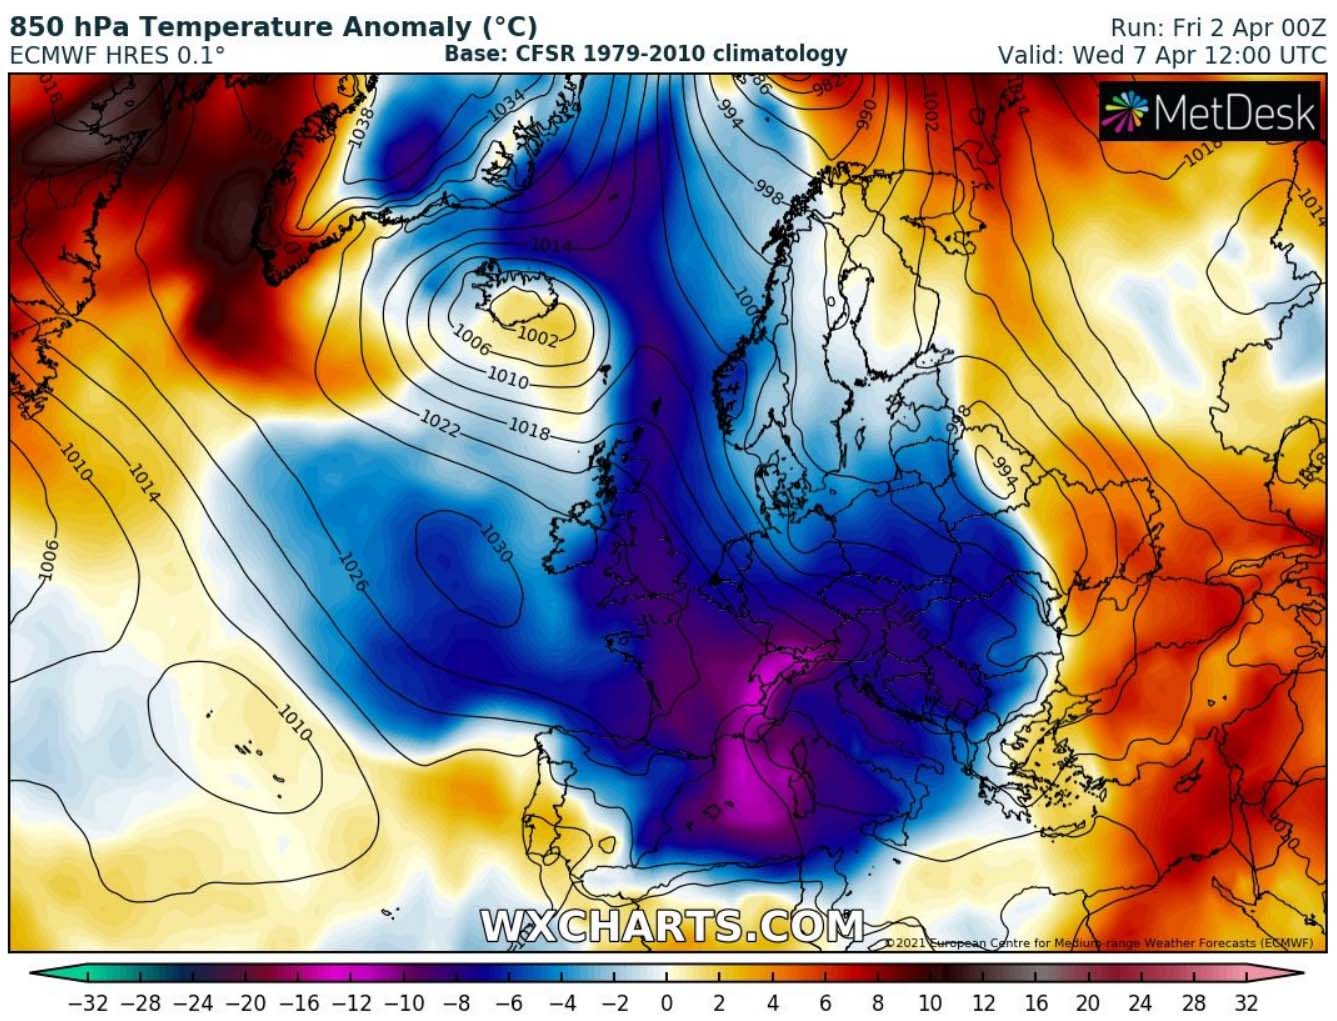 historic-cold-blast-europe-snow-easter-sunday-temperature-wednesday